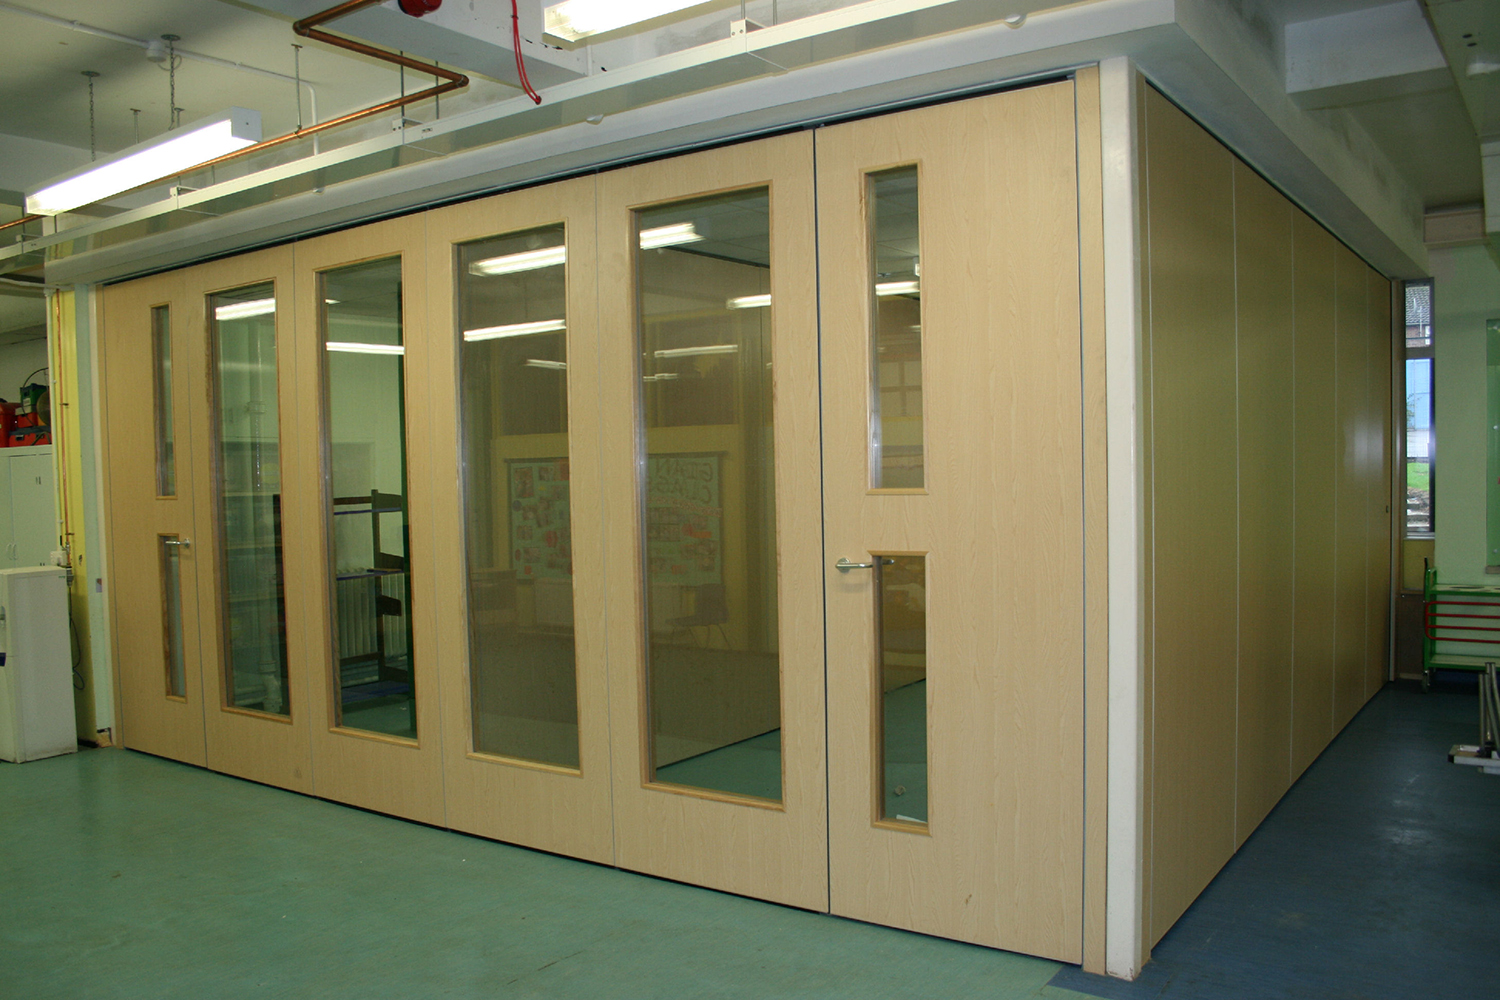 Operable walls from Beehive allow flexible spaces in classrooms